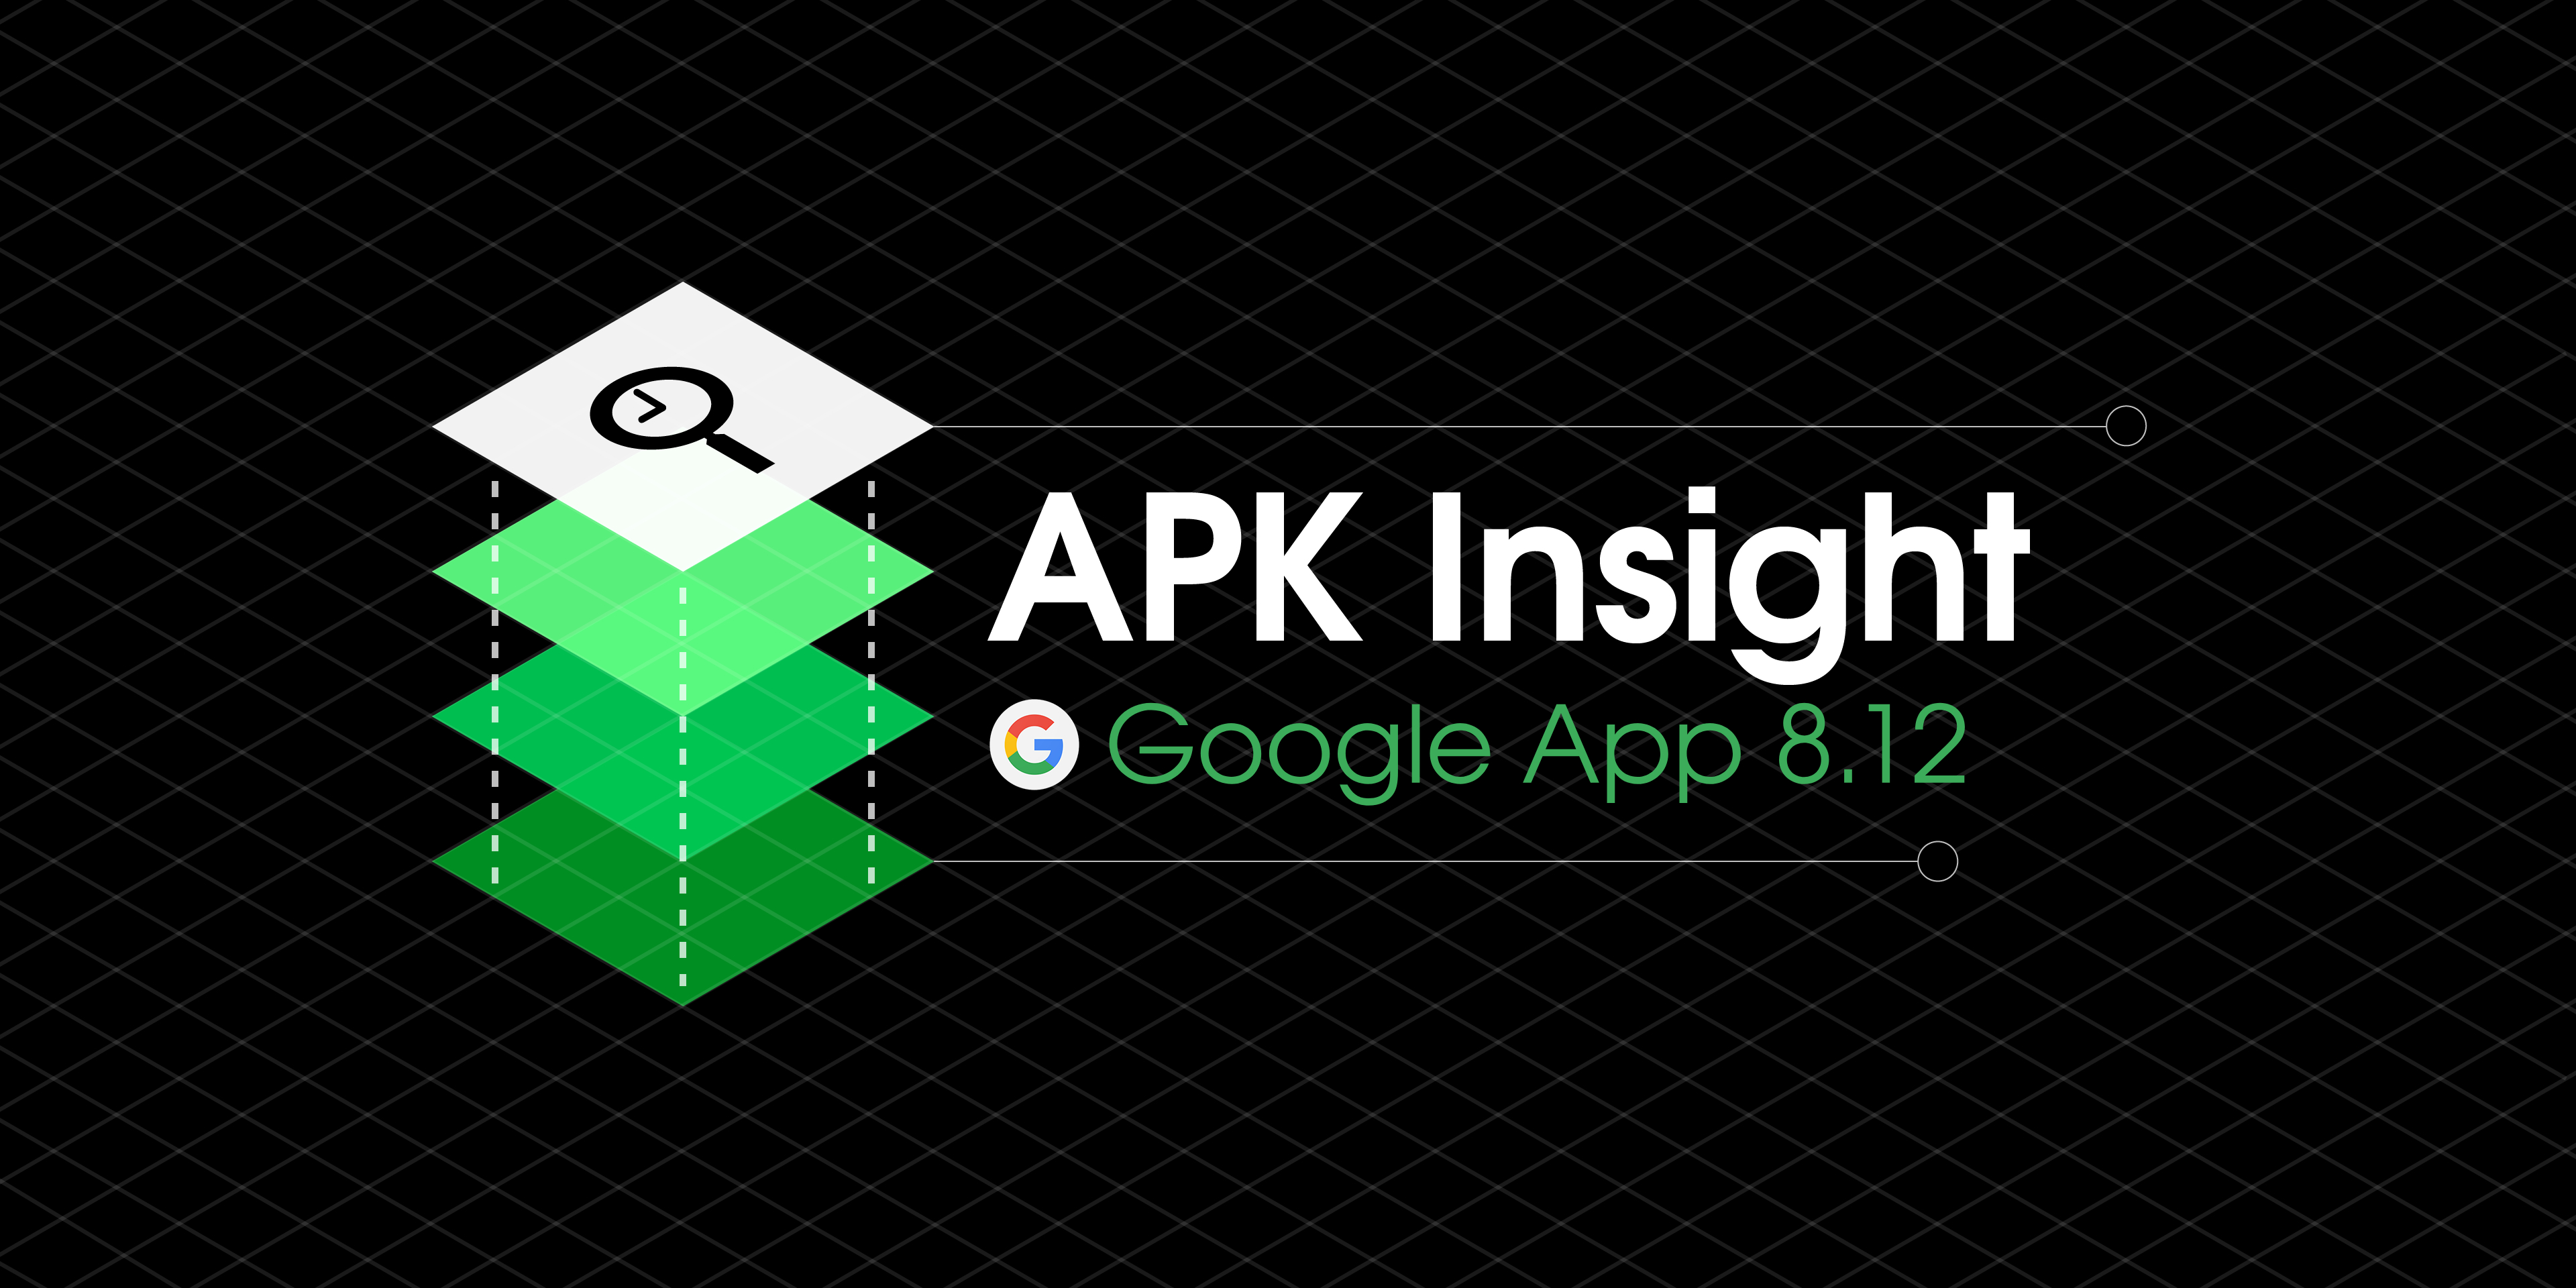 google app 8 12 preps deprecating feed widget podcasts episode search apk insight